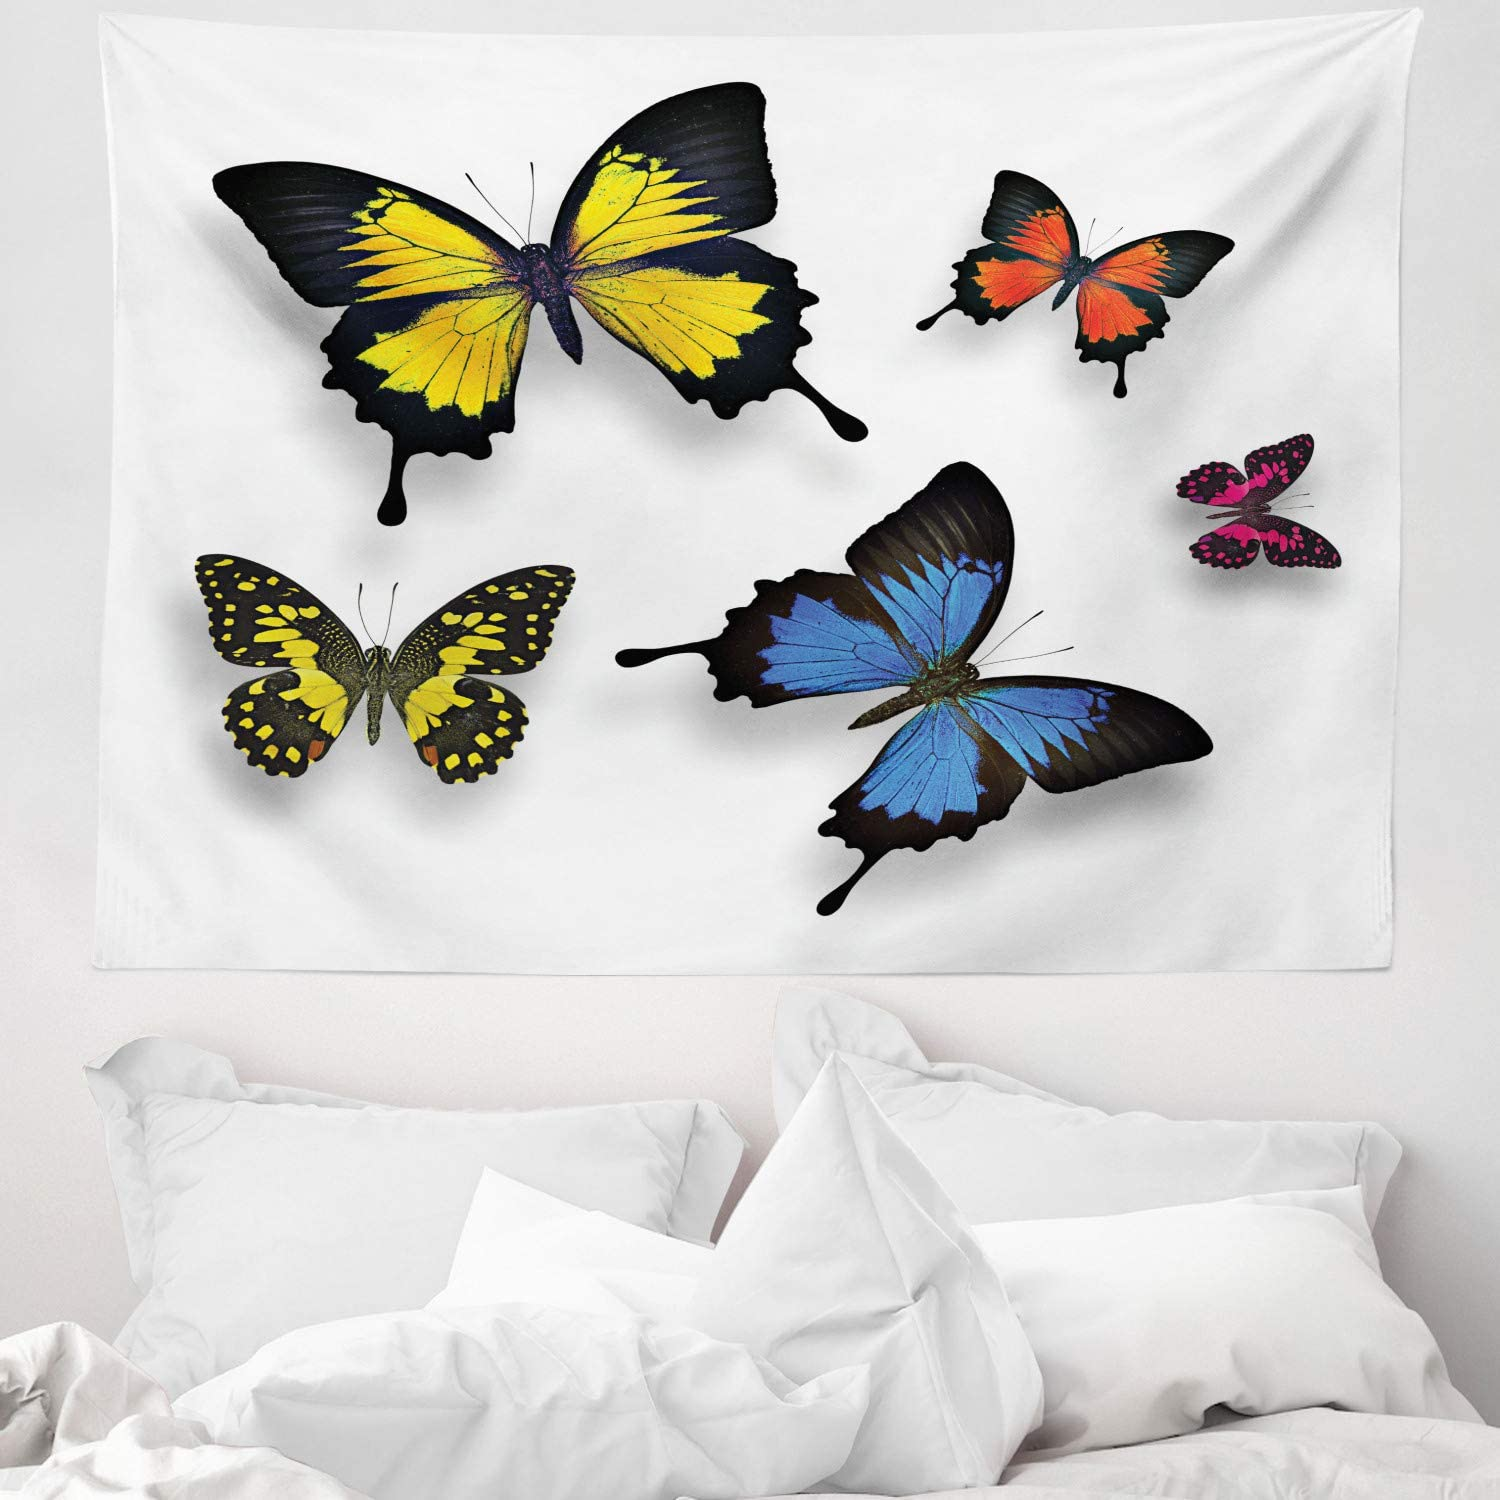 Abakuhaus Butterfly Tapestry Various Colorful Butterflies Pattern And Moths With Grace Of Nature Themed Wings Fabric Wall Hanging Decor For Bedroom Living Room Dorm 58 W X 43 L Multicolor Amazon Co Uk Kitchen